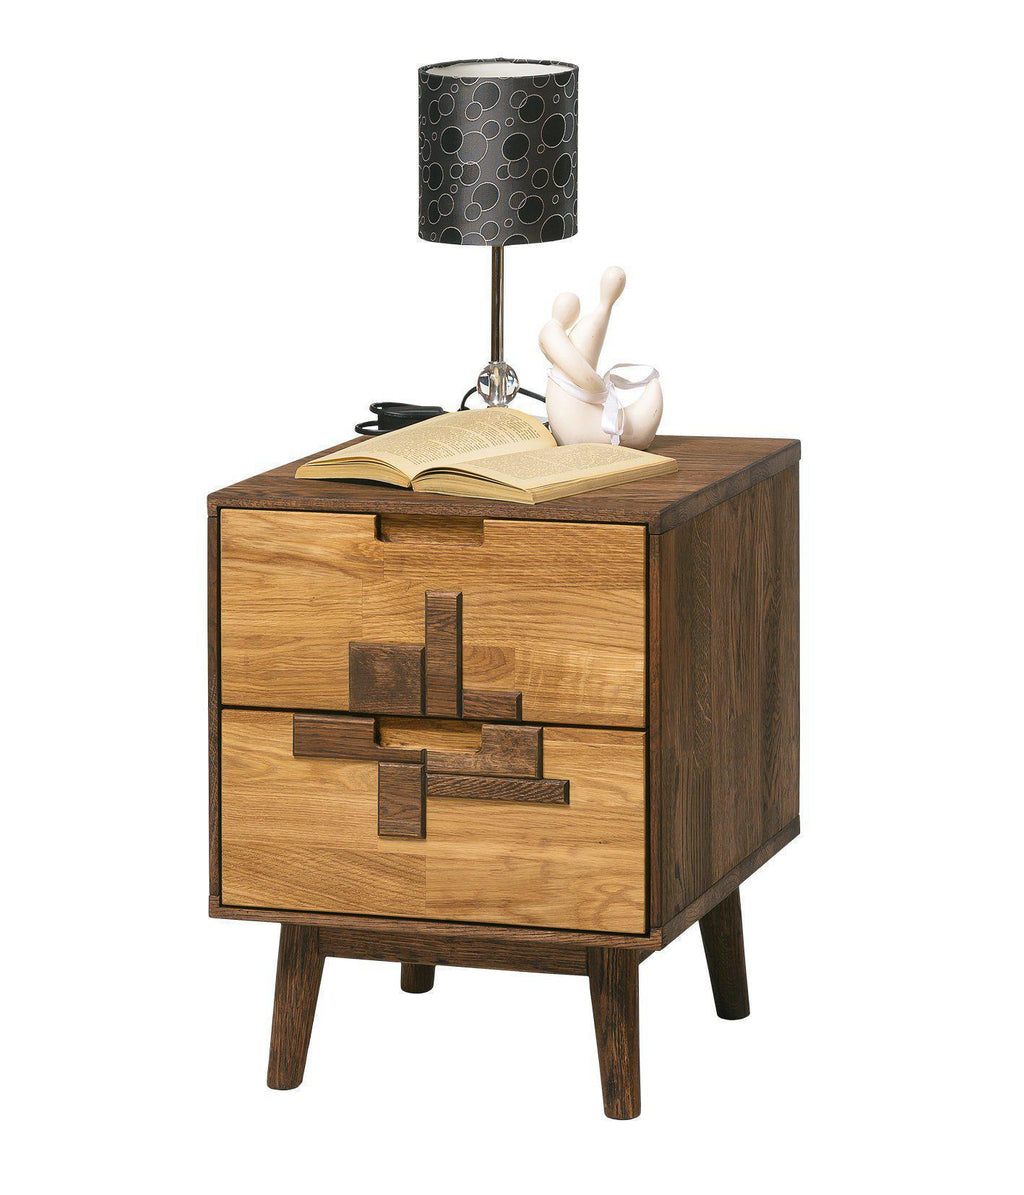 NordicStory Solid oak wood bedside table